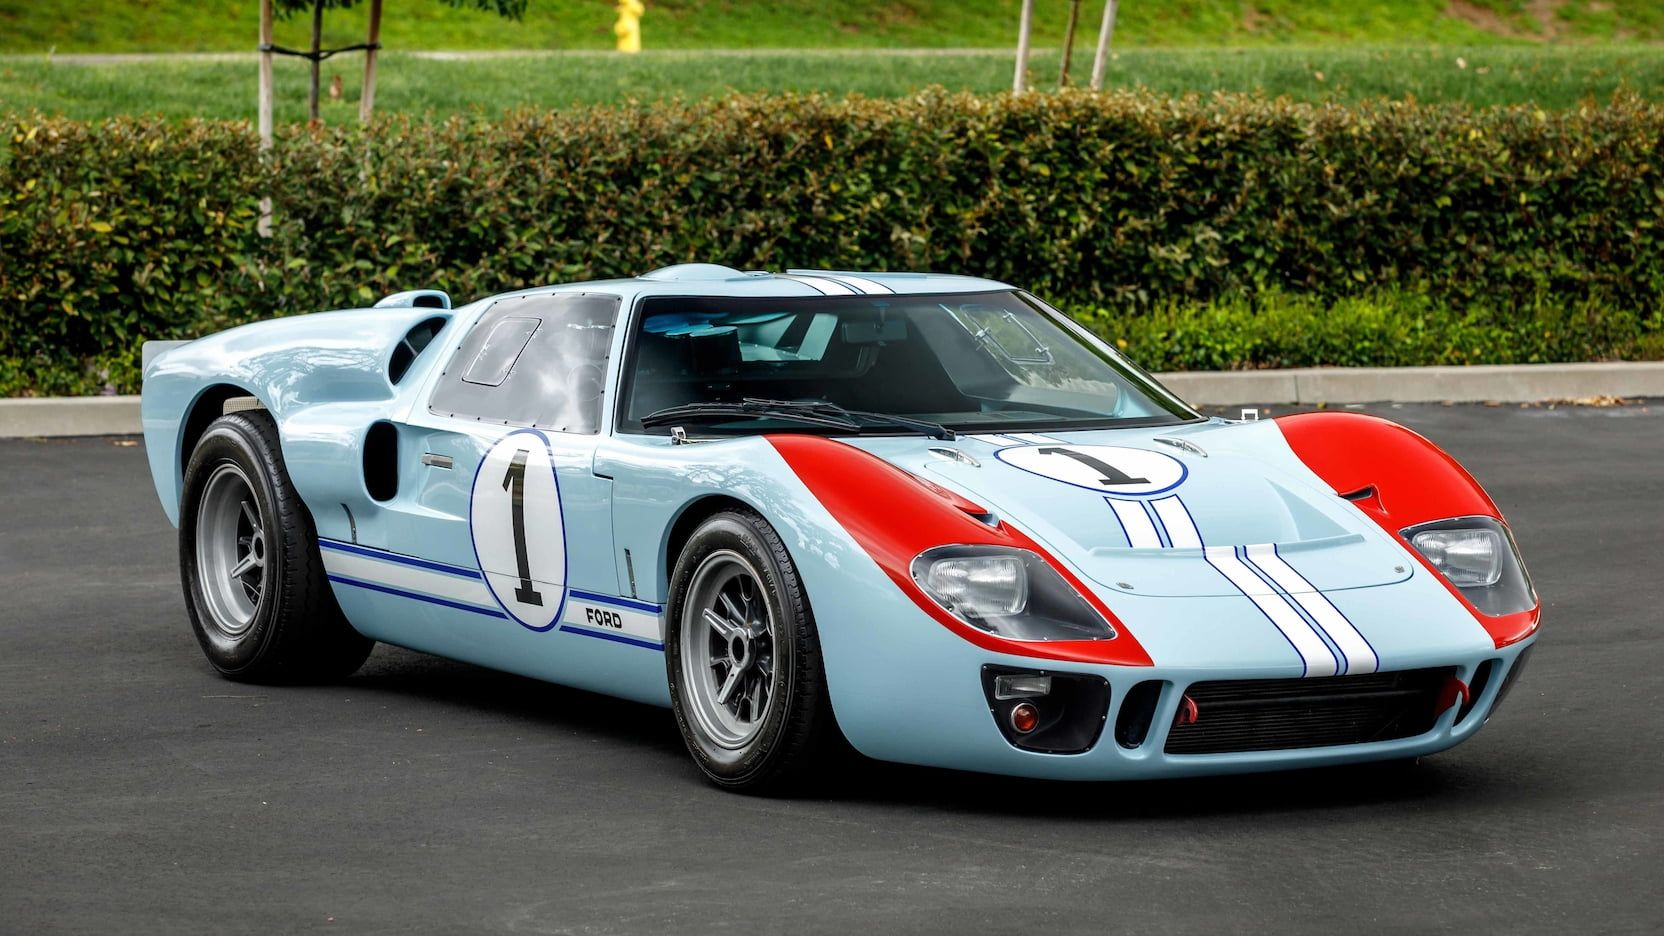 You Can Own One Of The Superformance Ford Gt40 Replicas From The